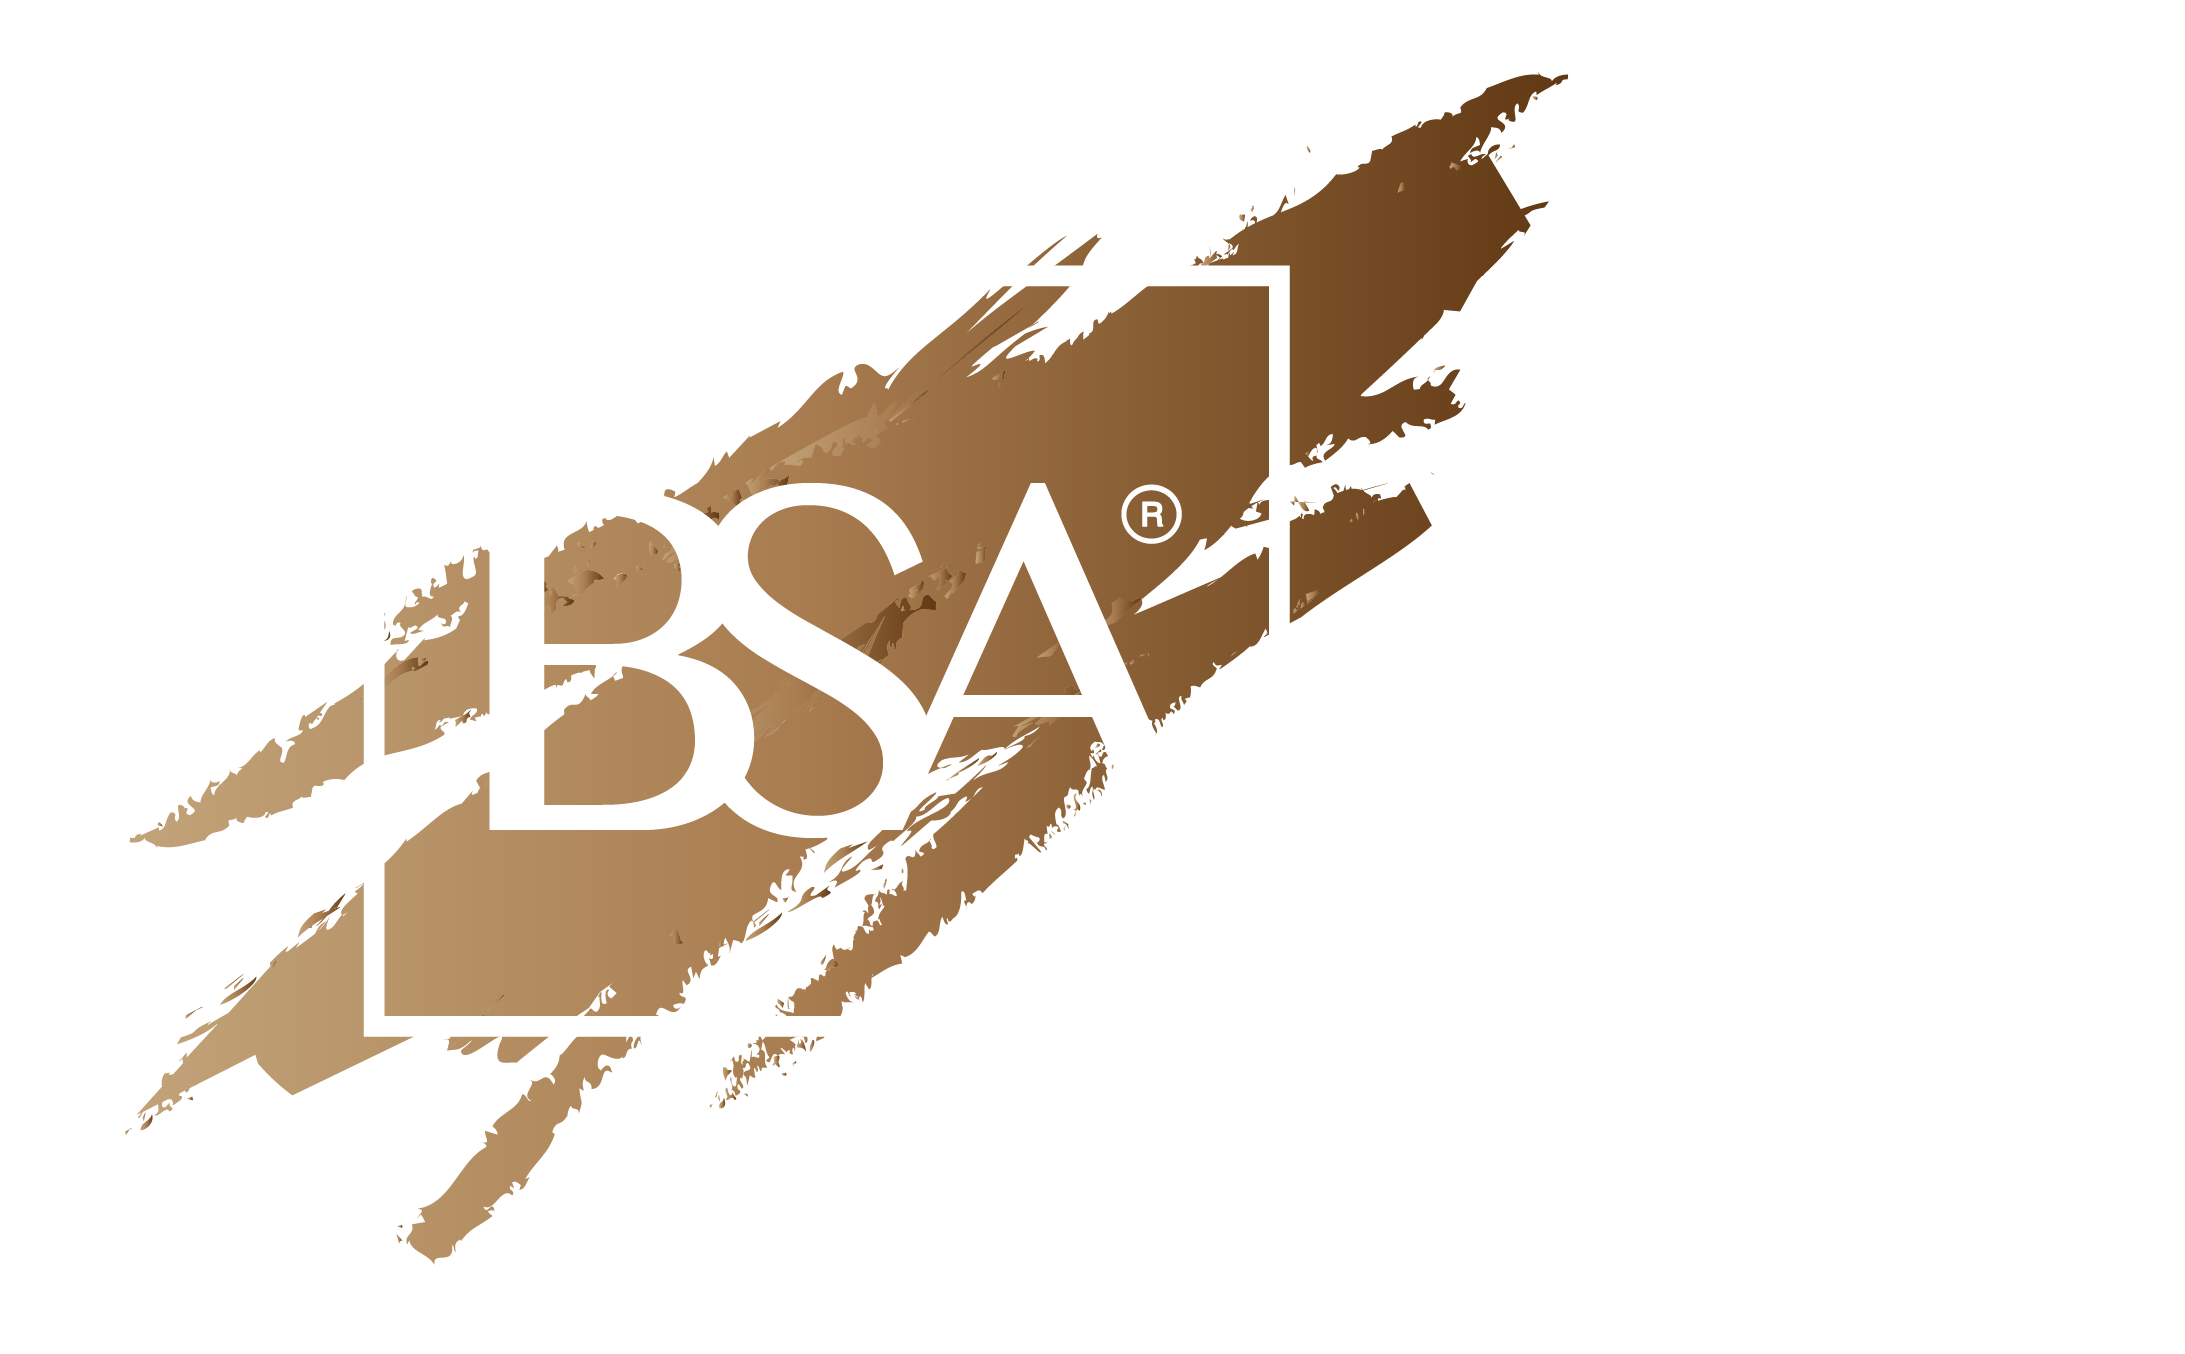 Branding Support Asia